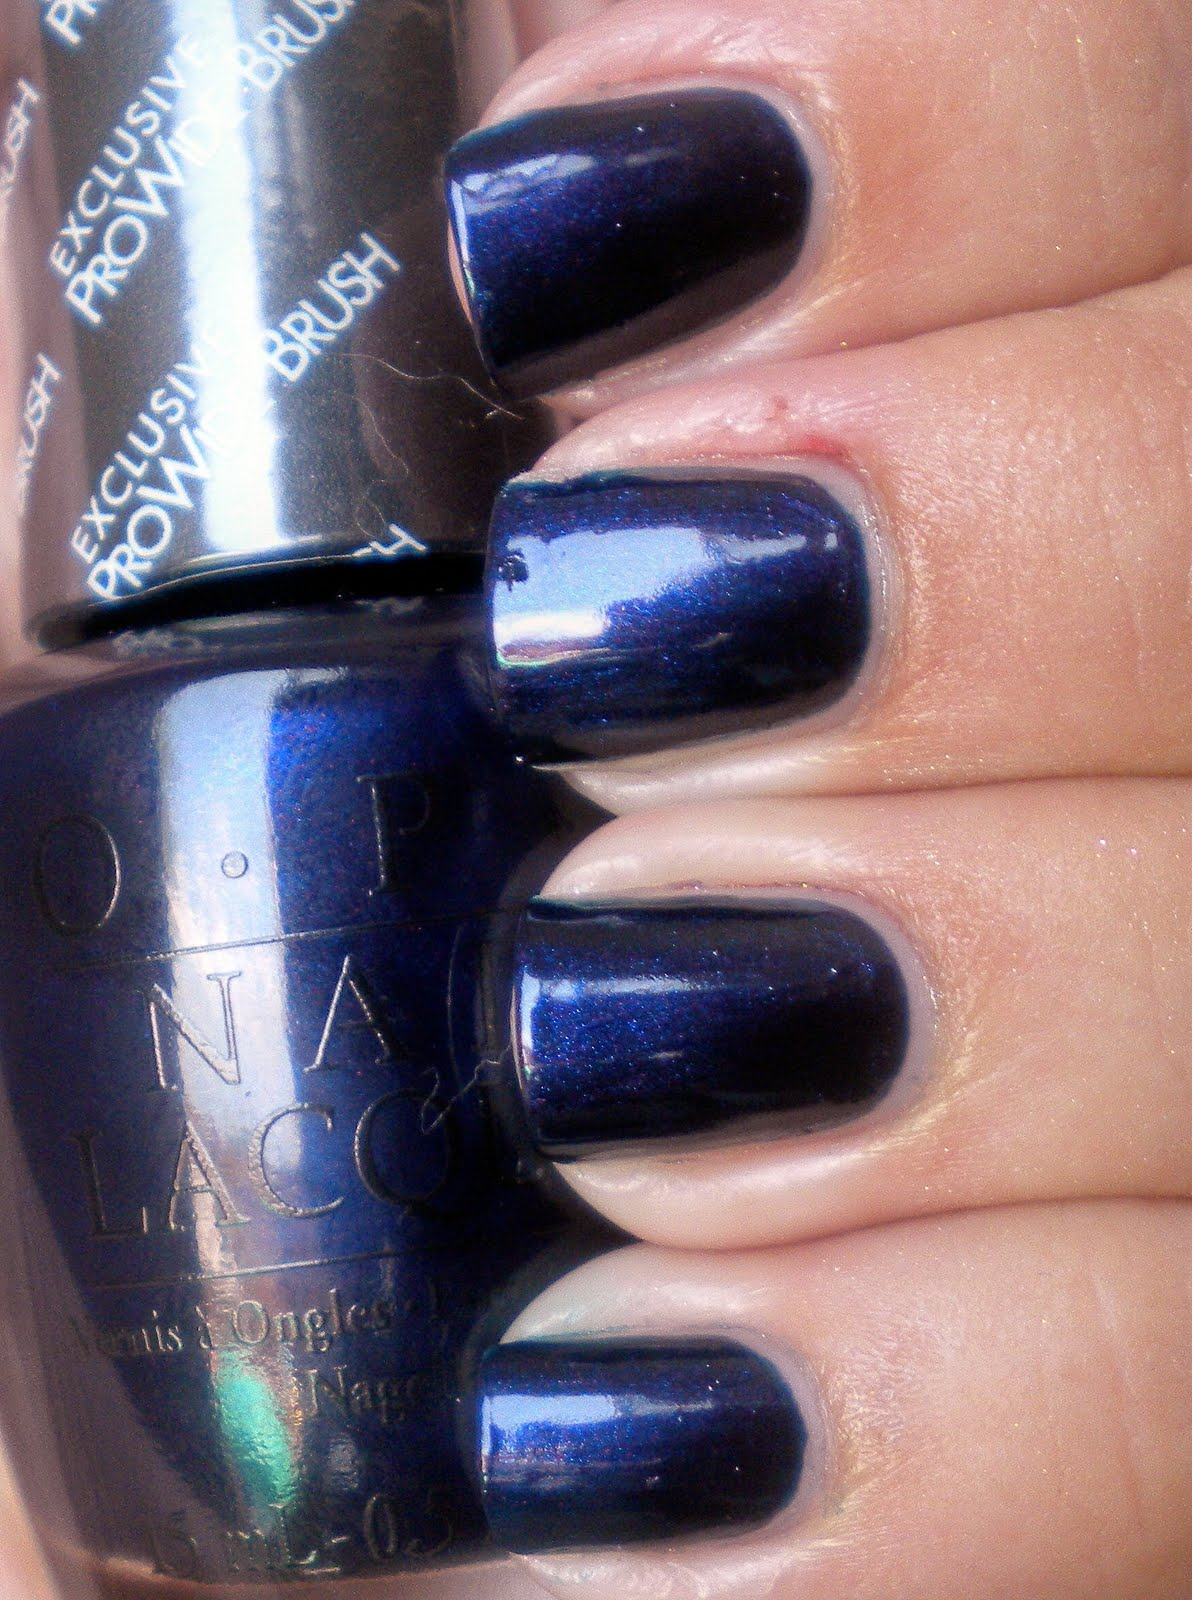 Russian Navy Was Released In Fall Winter 2007 The Collection It S A Very Dark Blue But With Tiny Pink Purple Shimmer